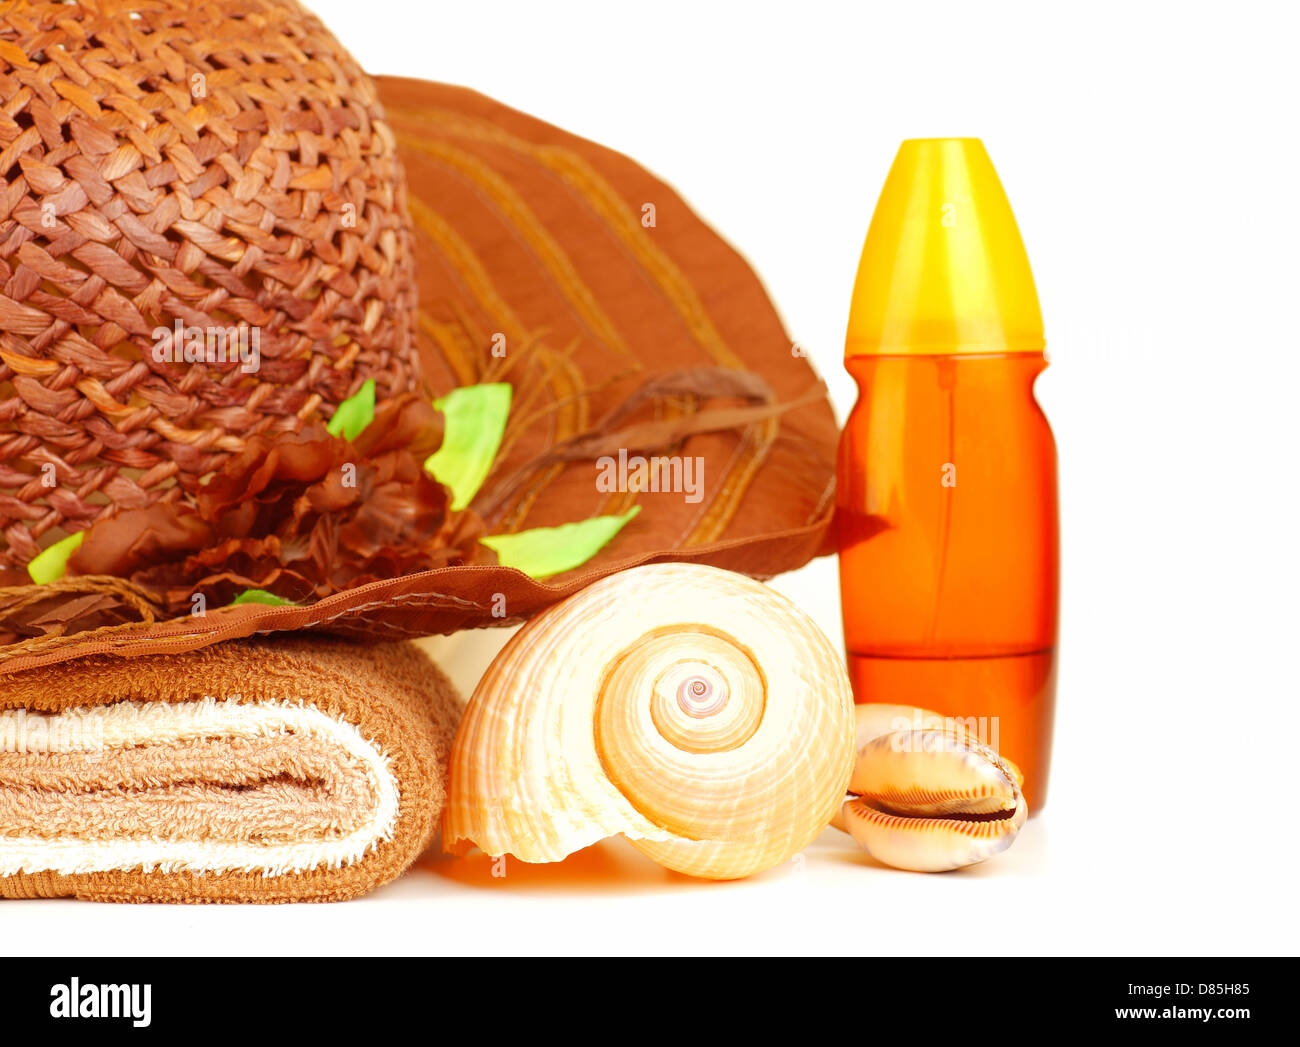 Beach items isolated on white background, straw hat, sunscreen oil, towel and seashell, still life, feminine accessories - Stock Image